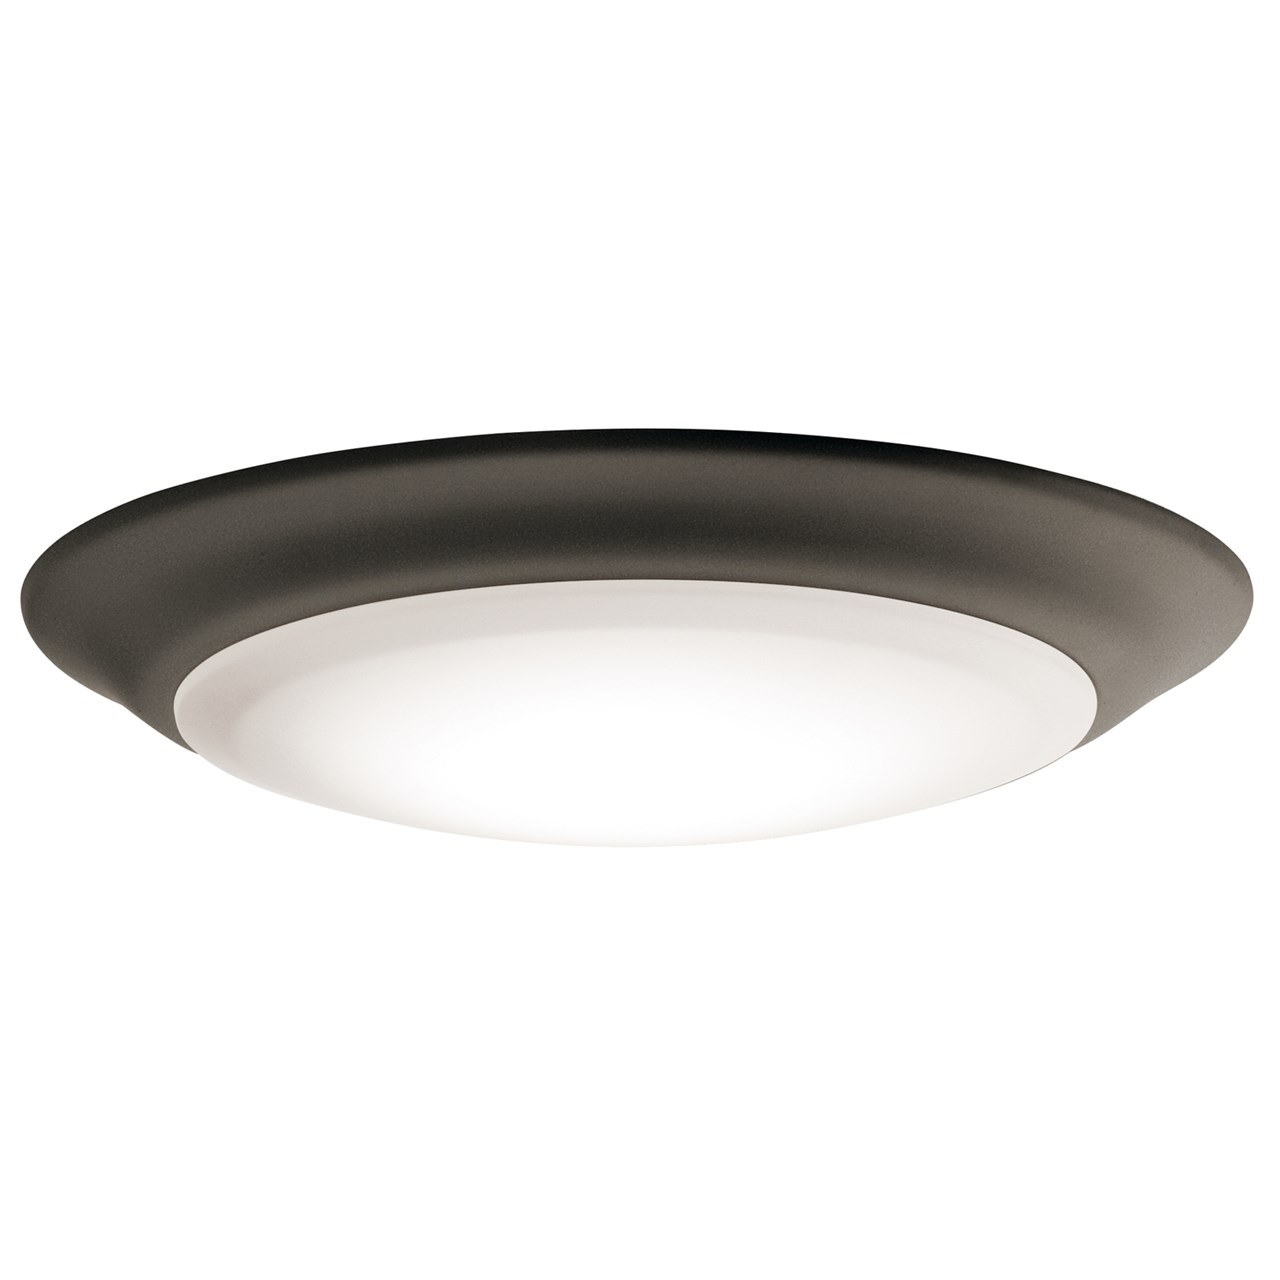 Downlight Gen II 3000K T24 LED Flush Mount Olde Bronze®